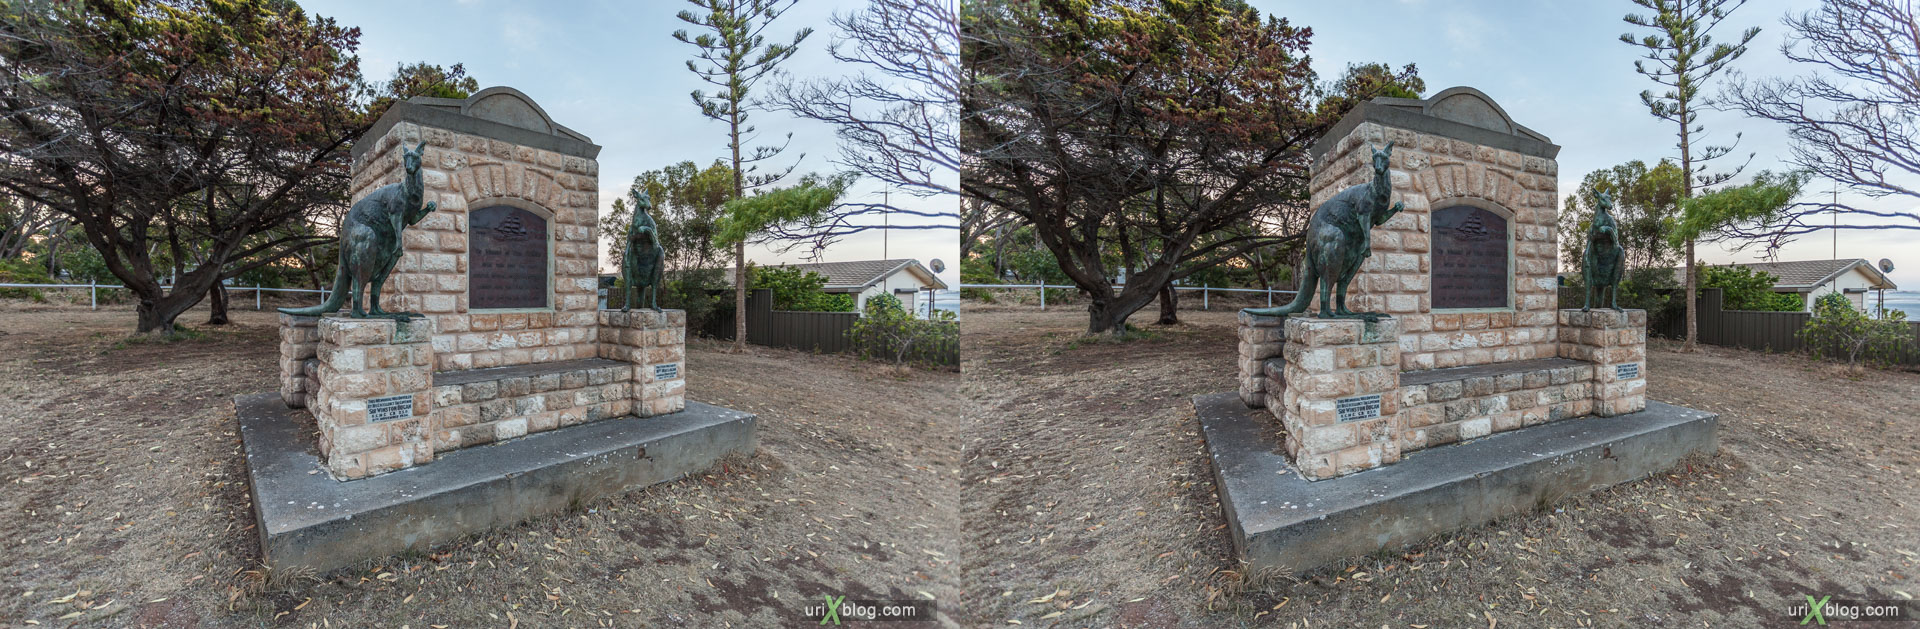 monument, 1836, Kingscote, Kangaroo Island, Australia, 3D, stereo pair, cross-eyed, crossview, cross view stereo pair, stereoscopic, 2011